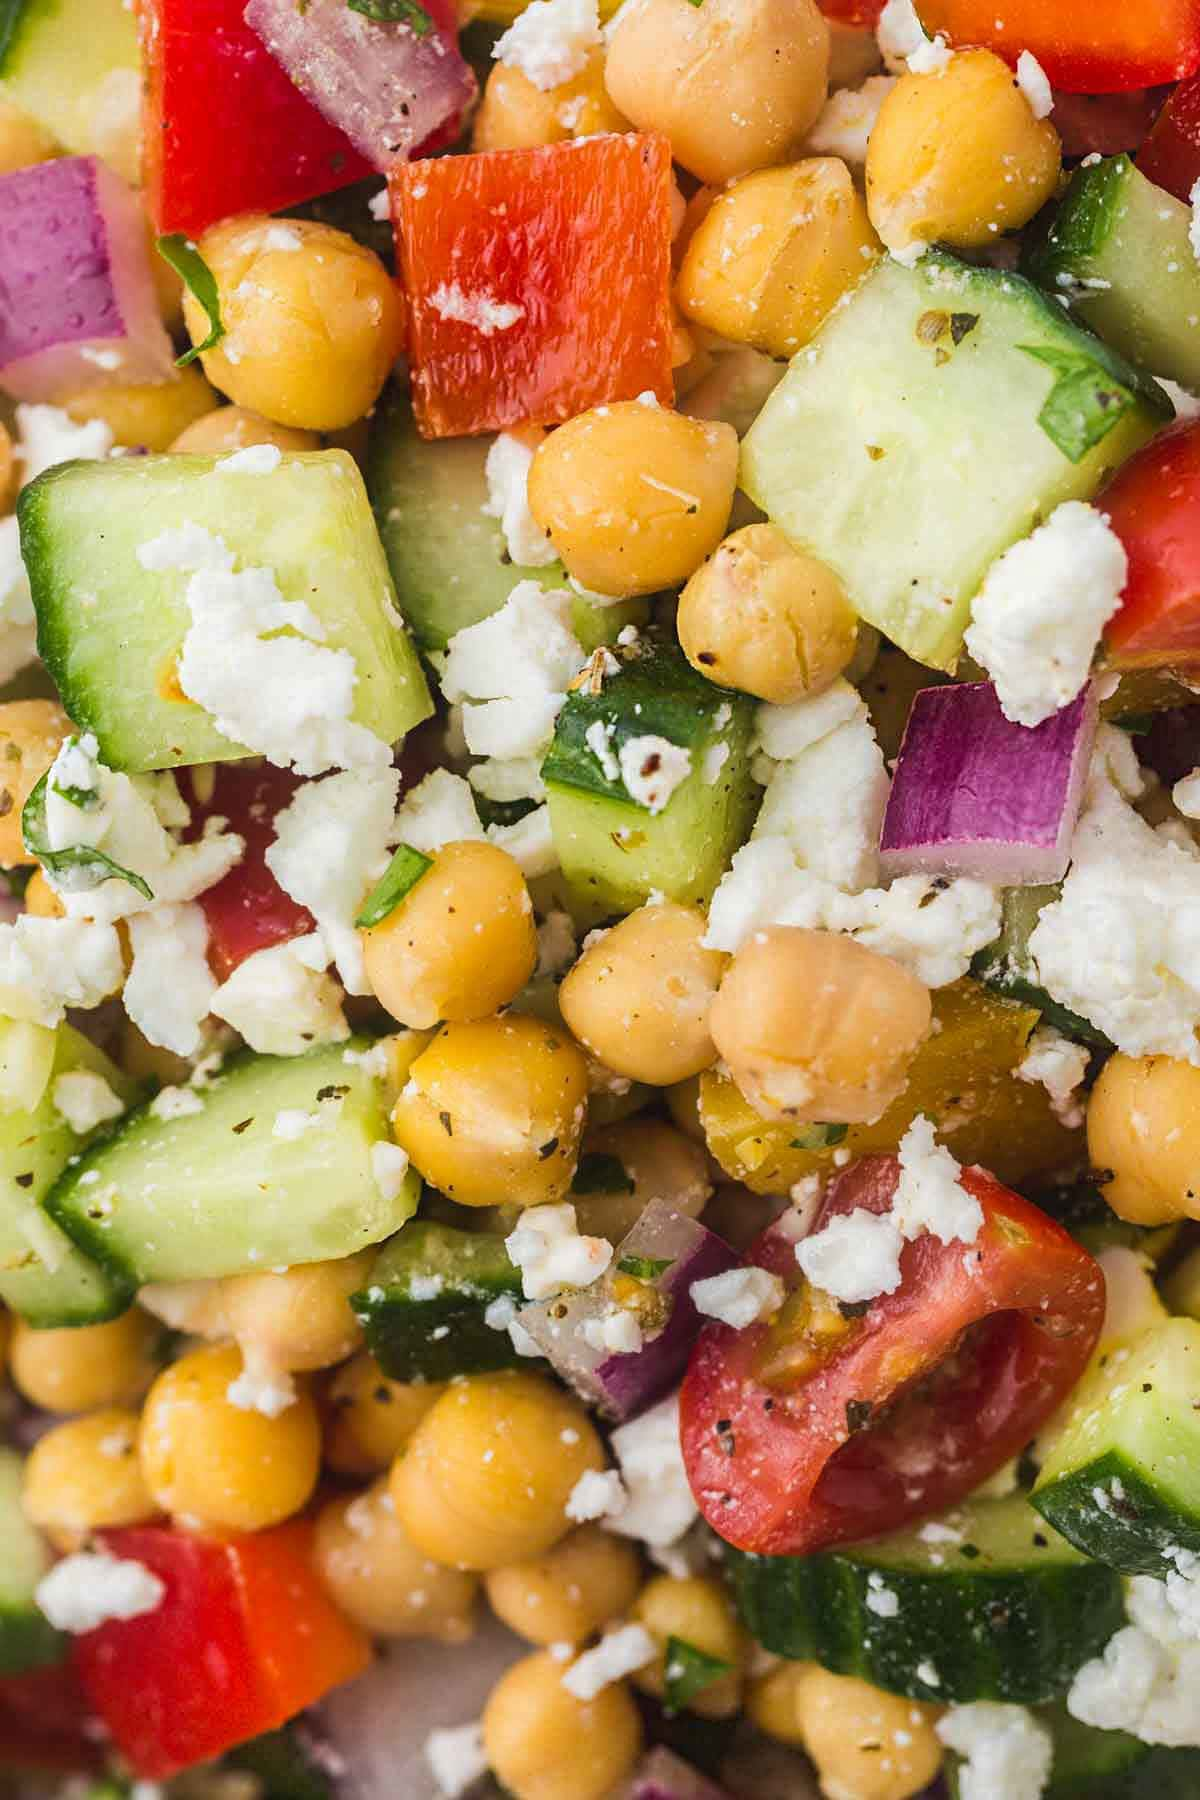 A close up shot of the chickpea salad